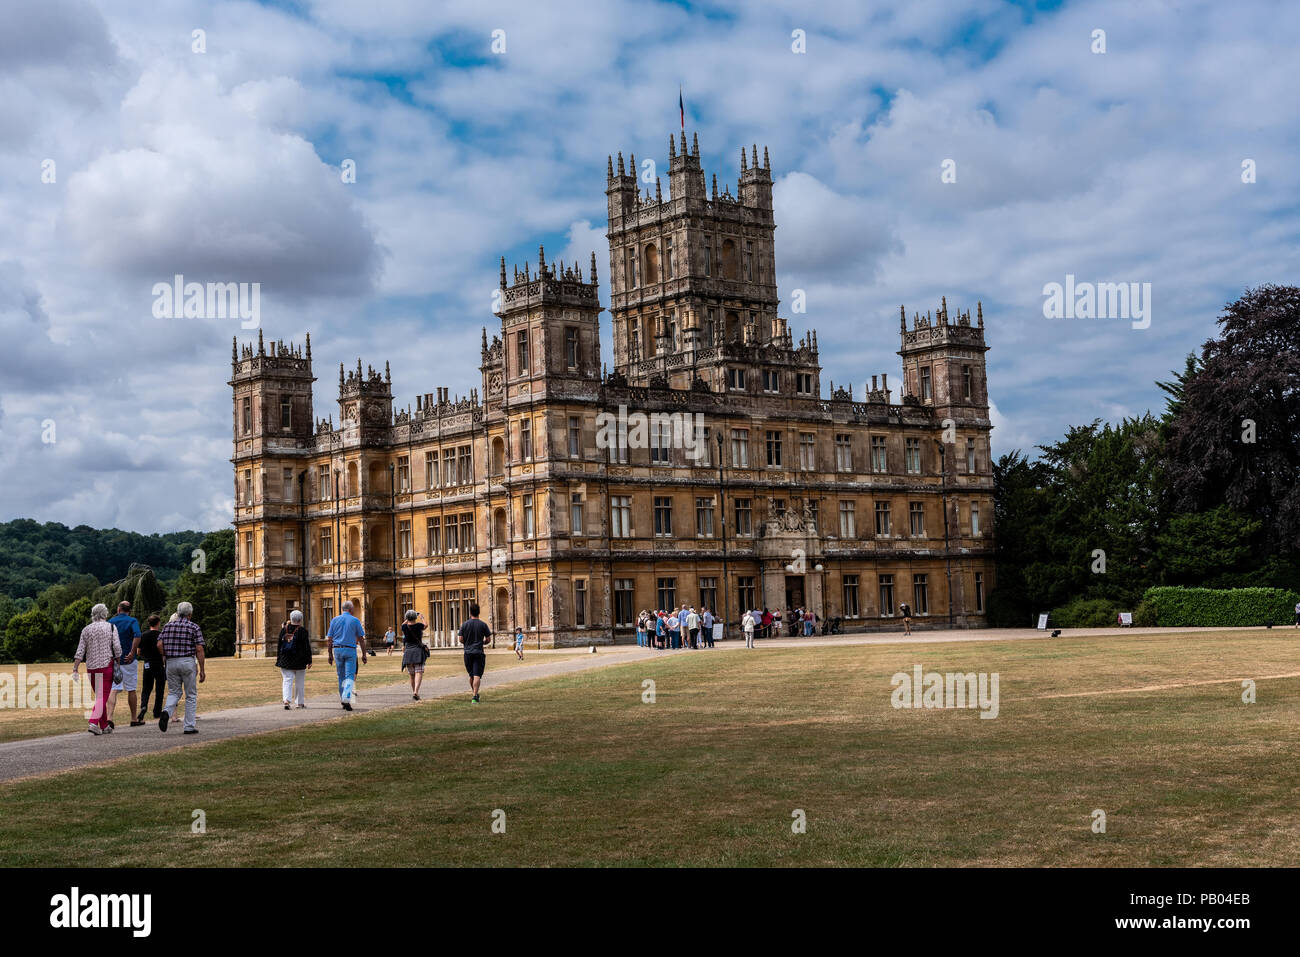 Newbury, England--July 18, 2018. Tour groups visit Highclere Castle, located on a 5,000 acre estate in Hampshire England. It is the location for shoot - Stock Image